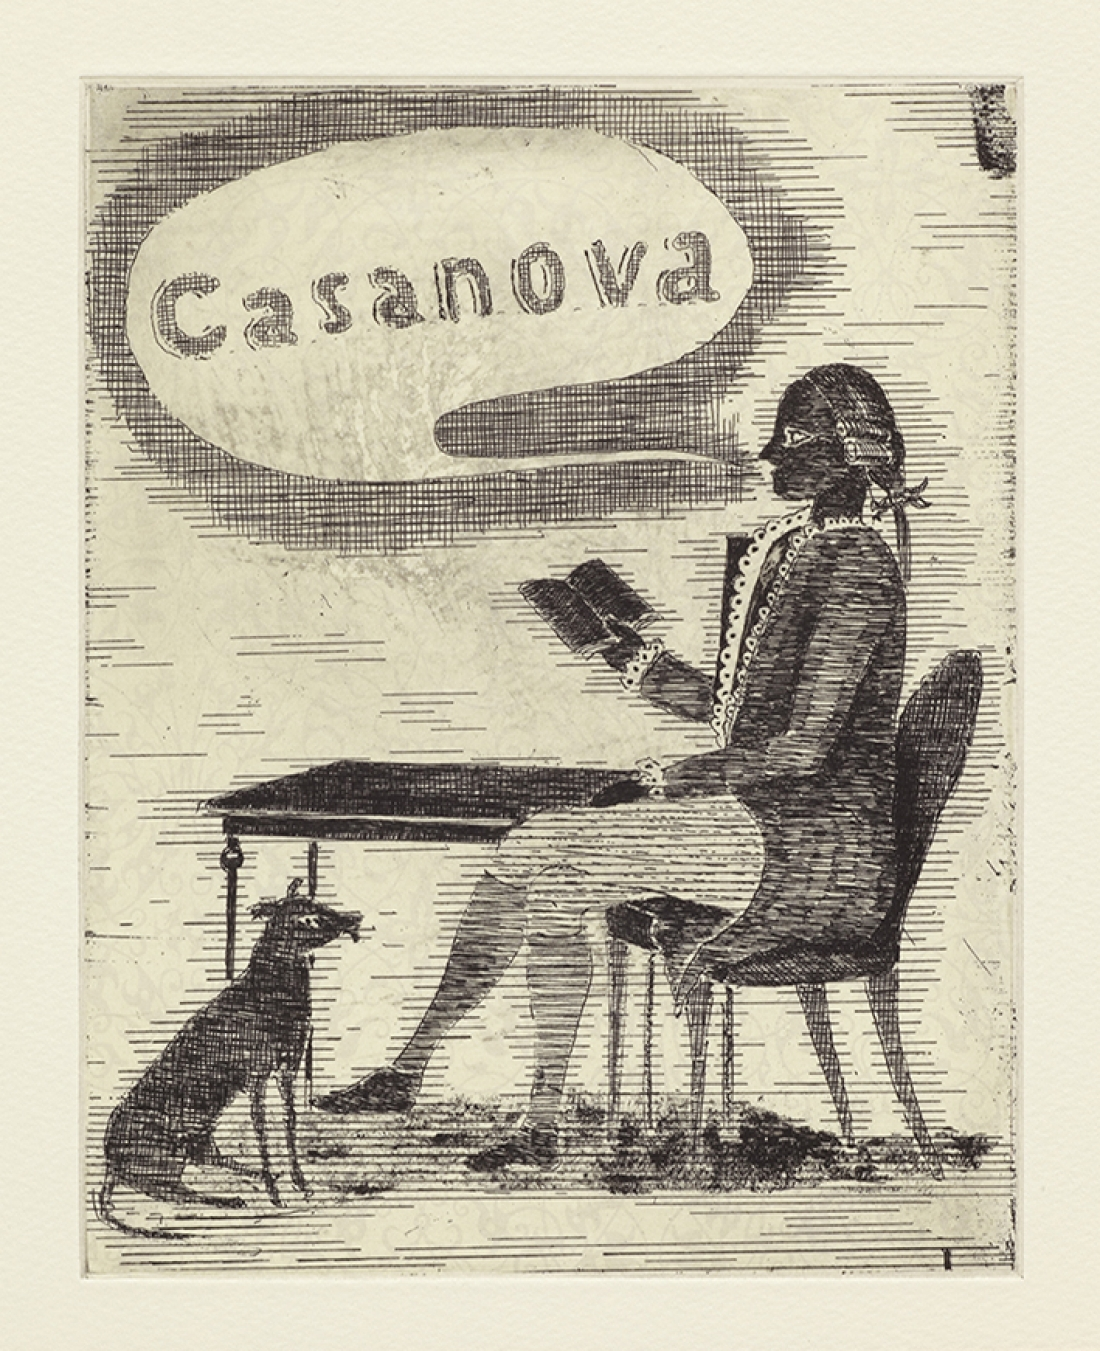 Casanova The National Lottery